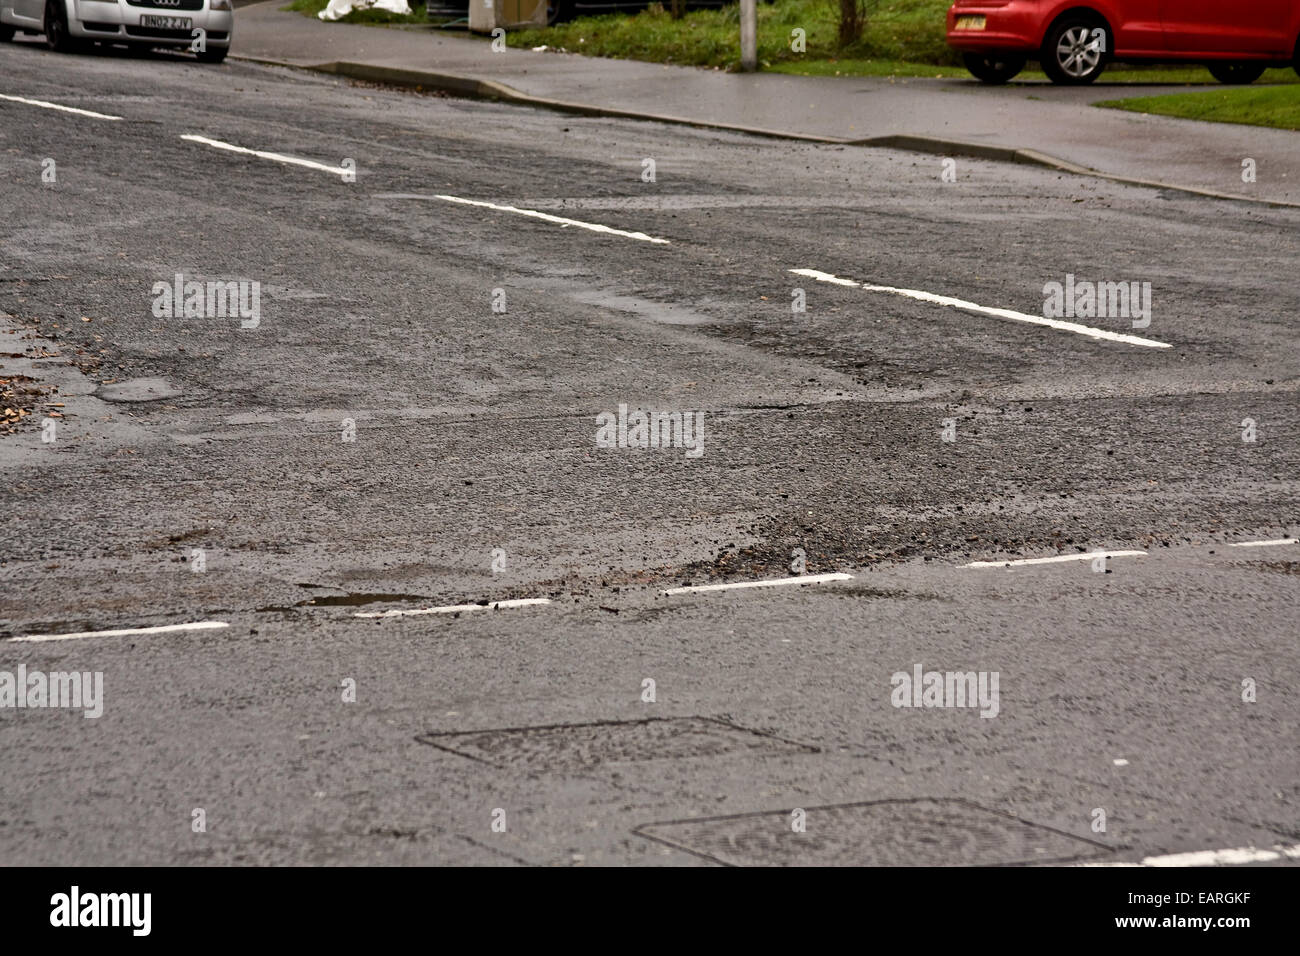 Councils are being invited to bid for a share of a £168 million Pothole Fund to repair local roads, making - Stock Image